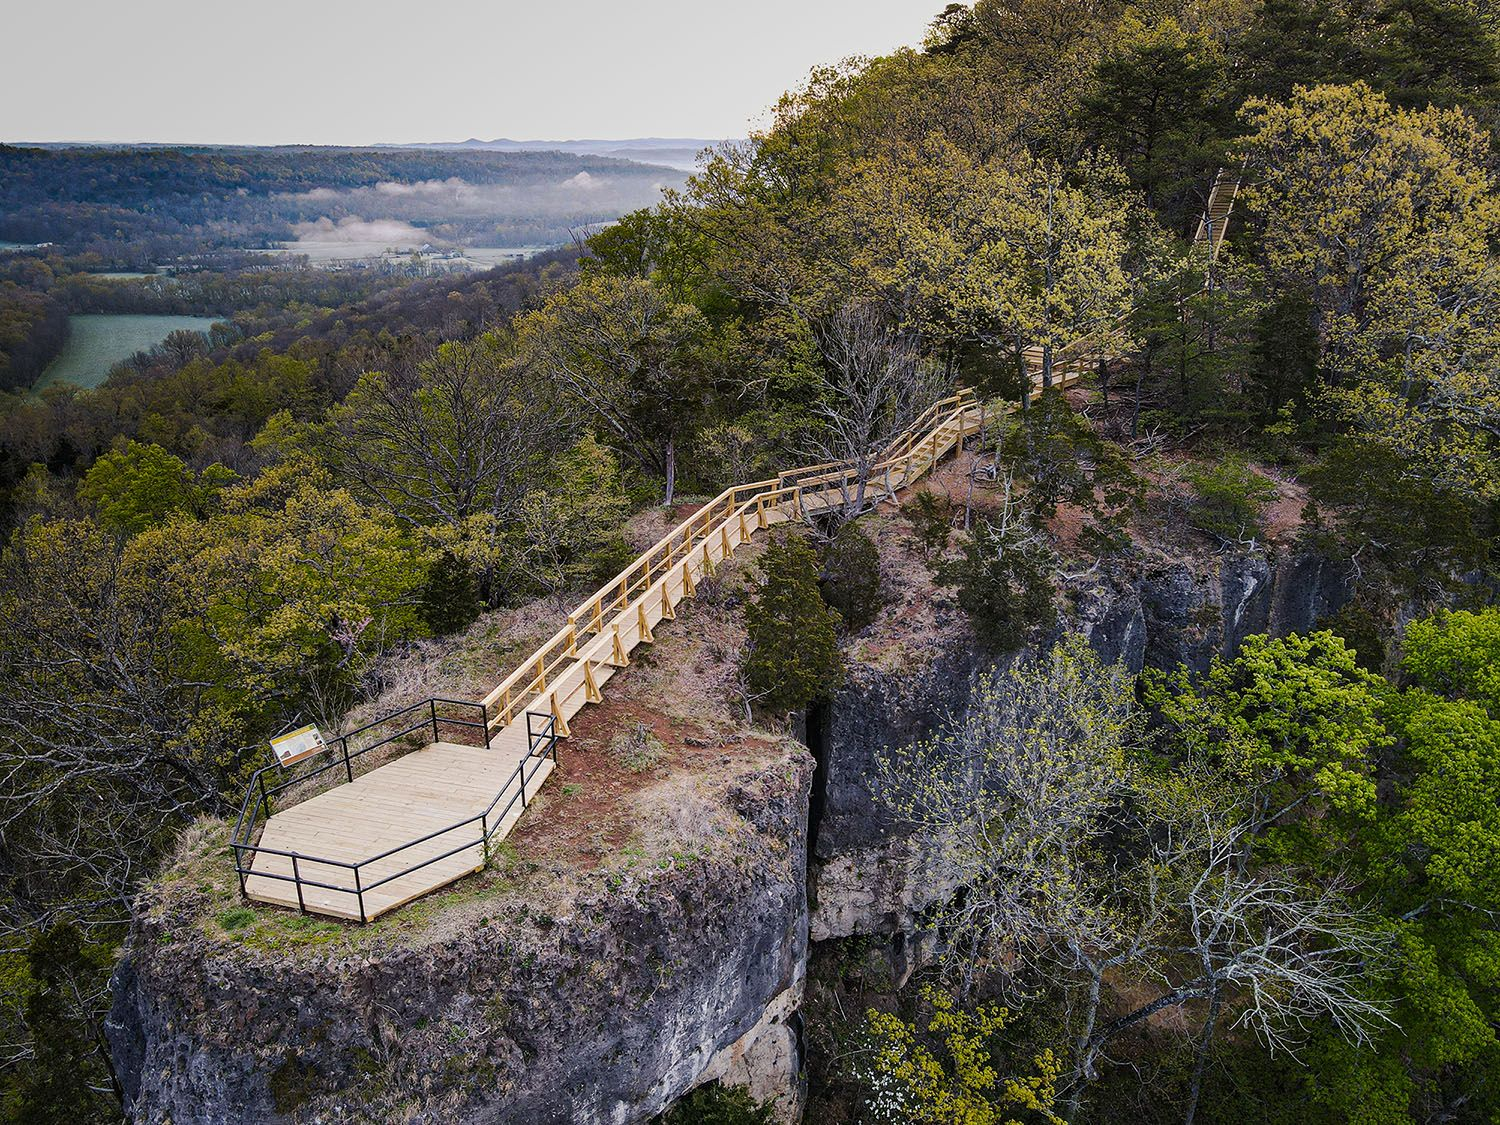 A bird's eye view of the wooden overlook that sits atop a large rock outcropping with forests surrounding.